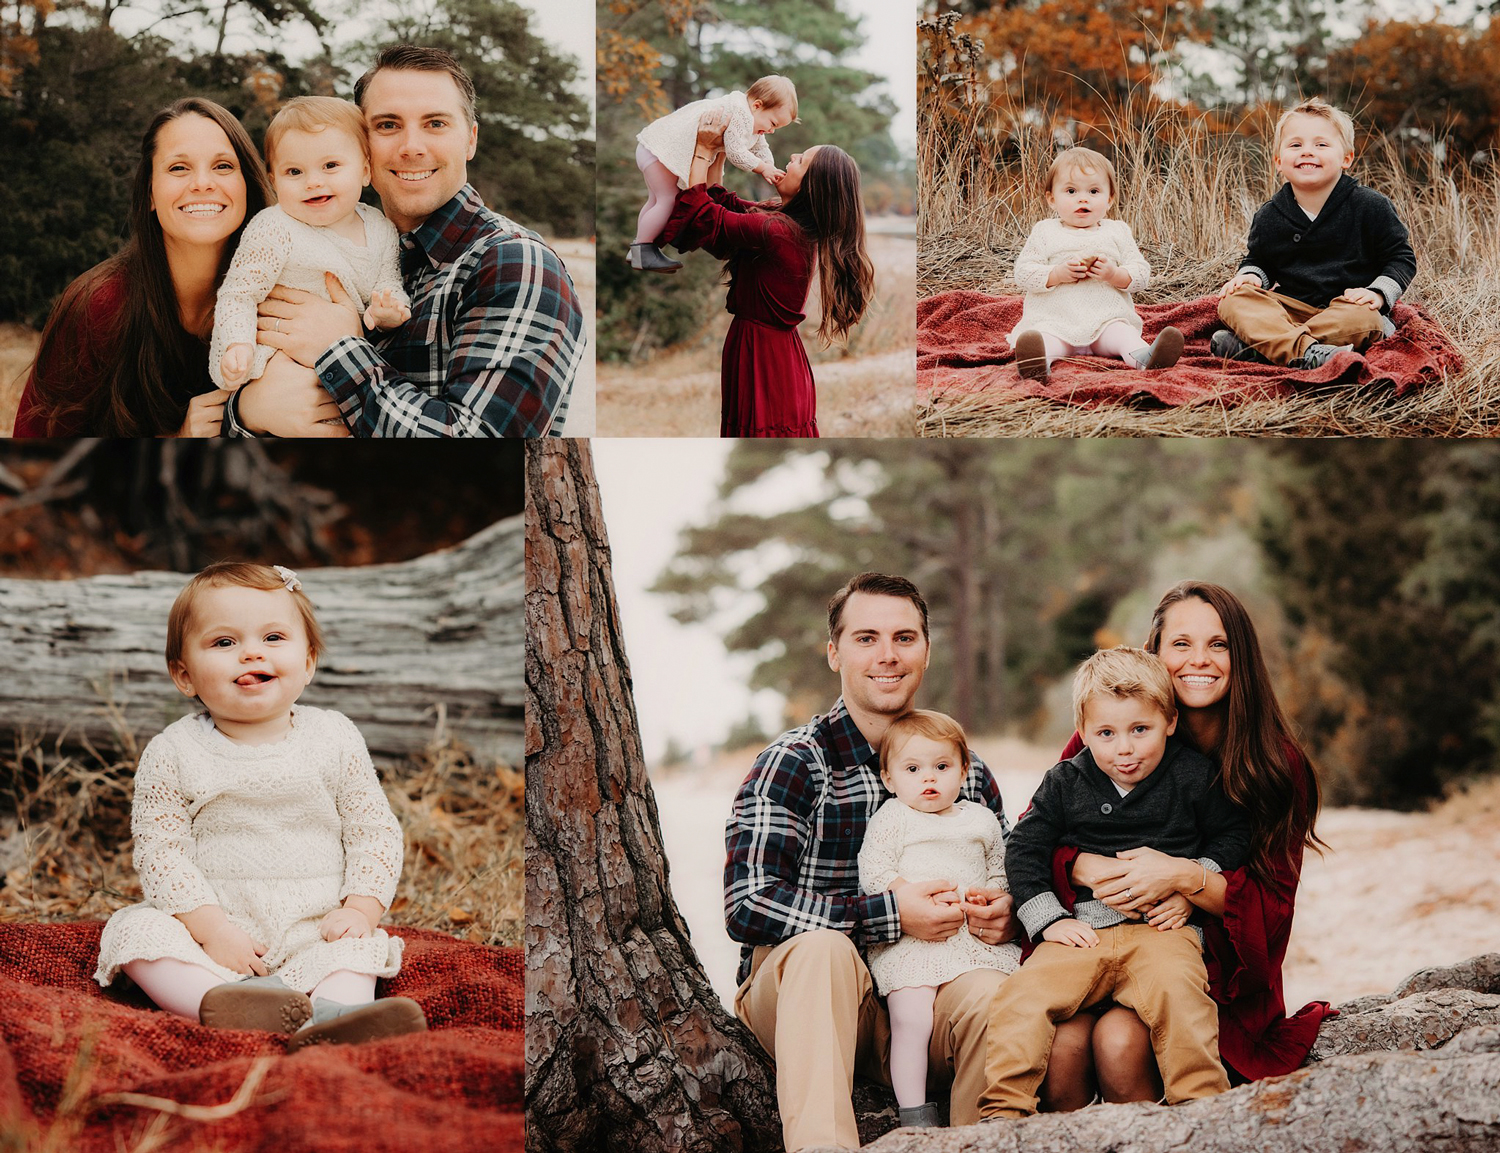 family-lifstyle-session-rich-colors-outdoor-park-in-virginia-beach-by-hampton-roads-best-family-photographer-melissa-bliss-photography.jpg